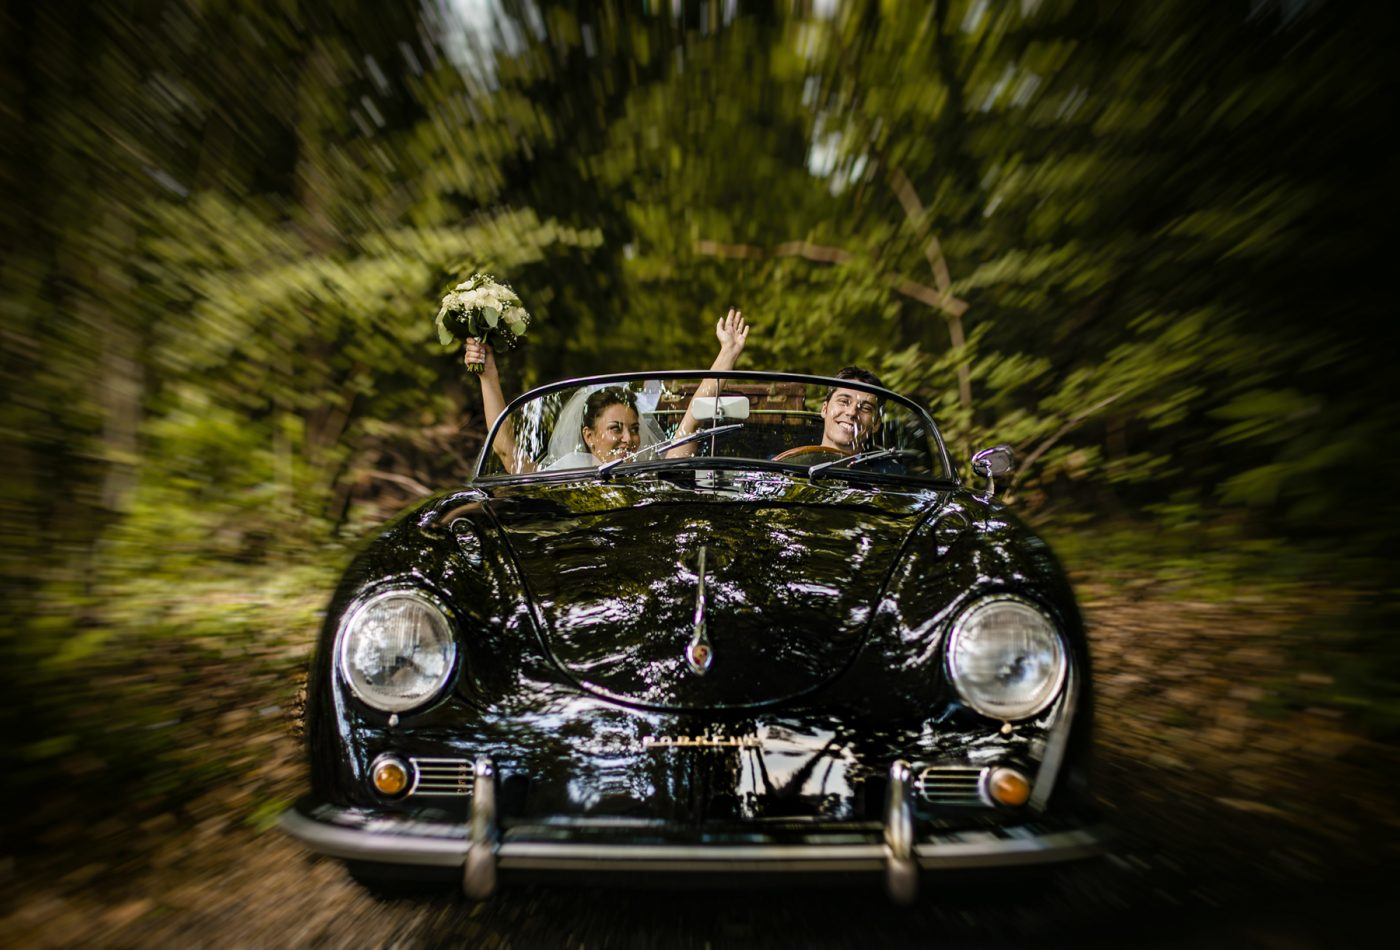 Wedding Photography by Stefano Ferrier